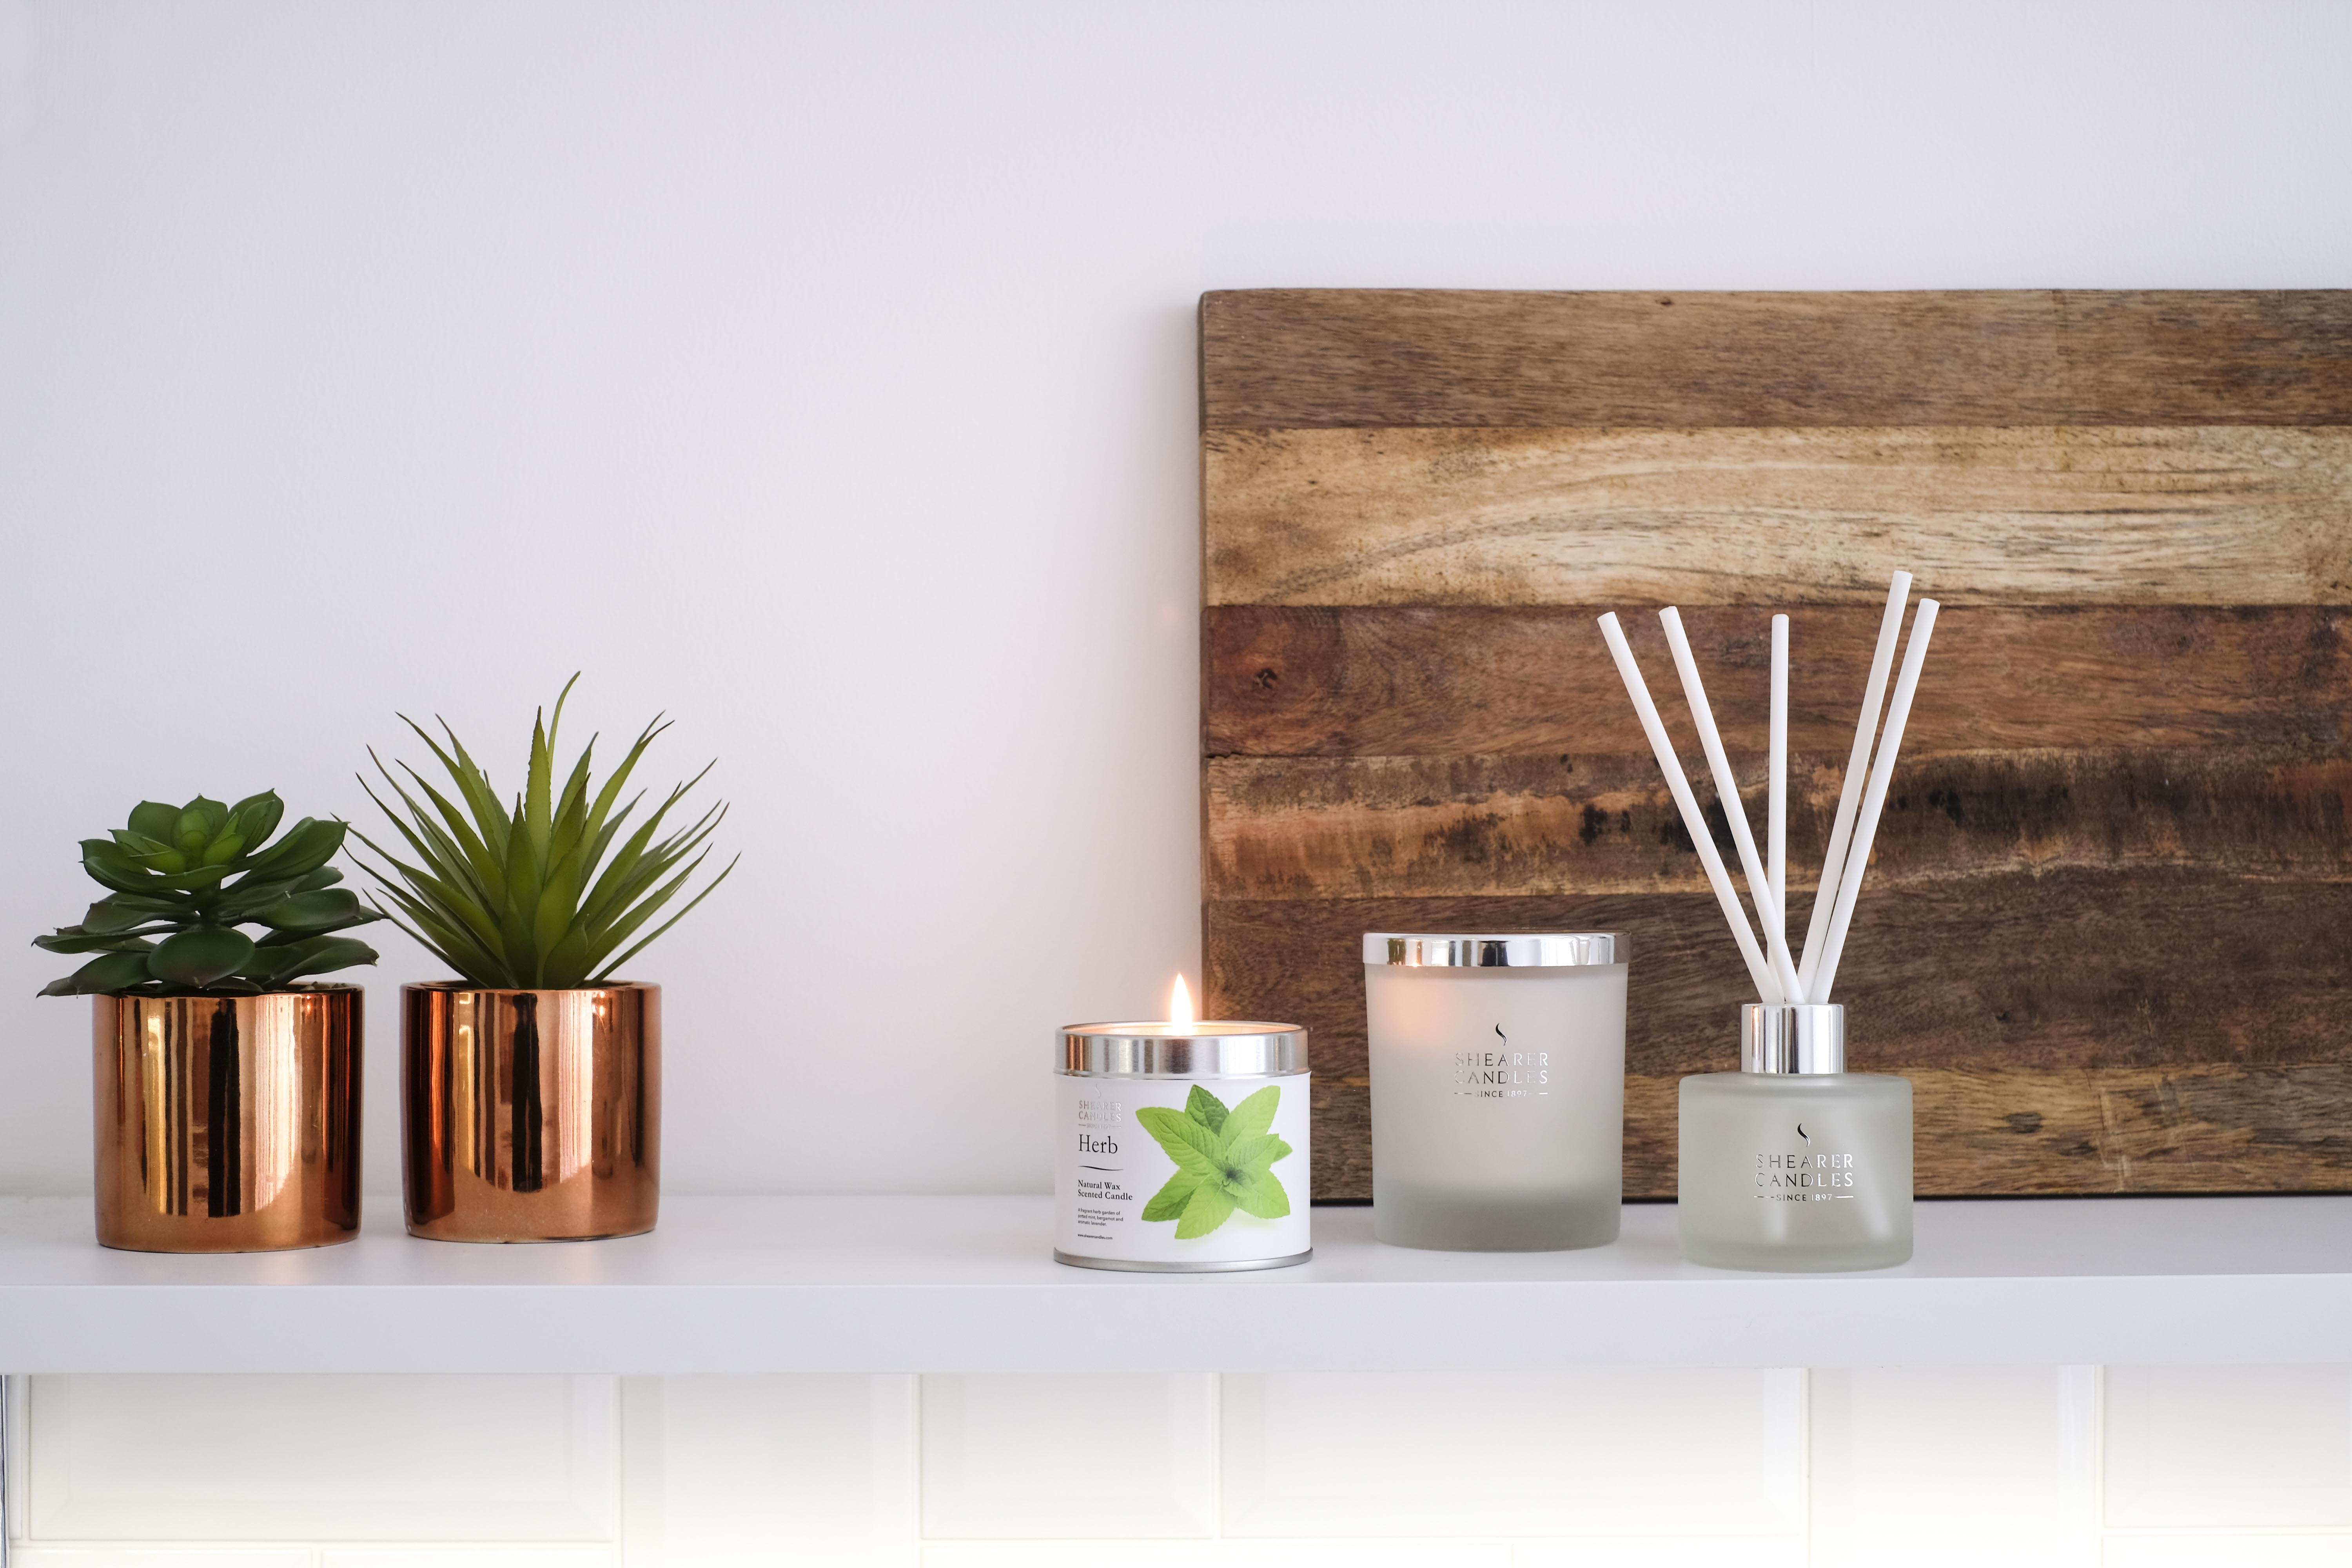 natural spa candles, diffusers and plants